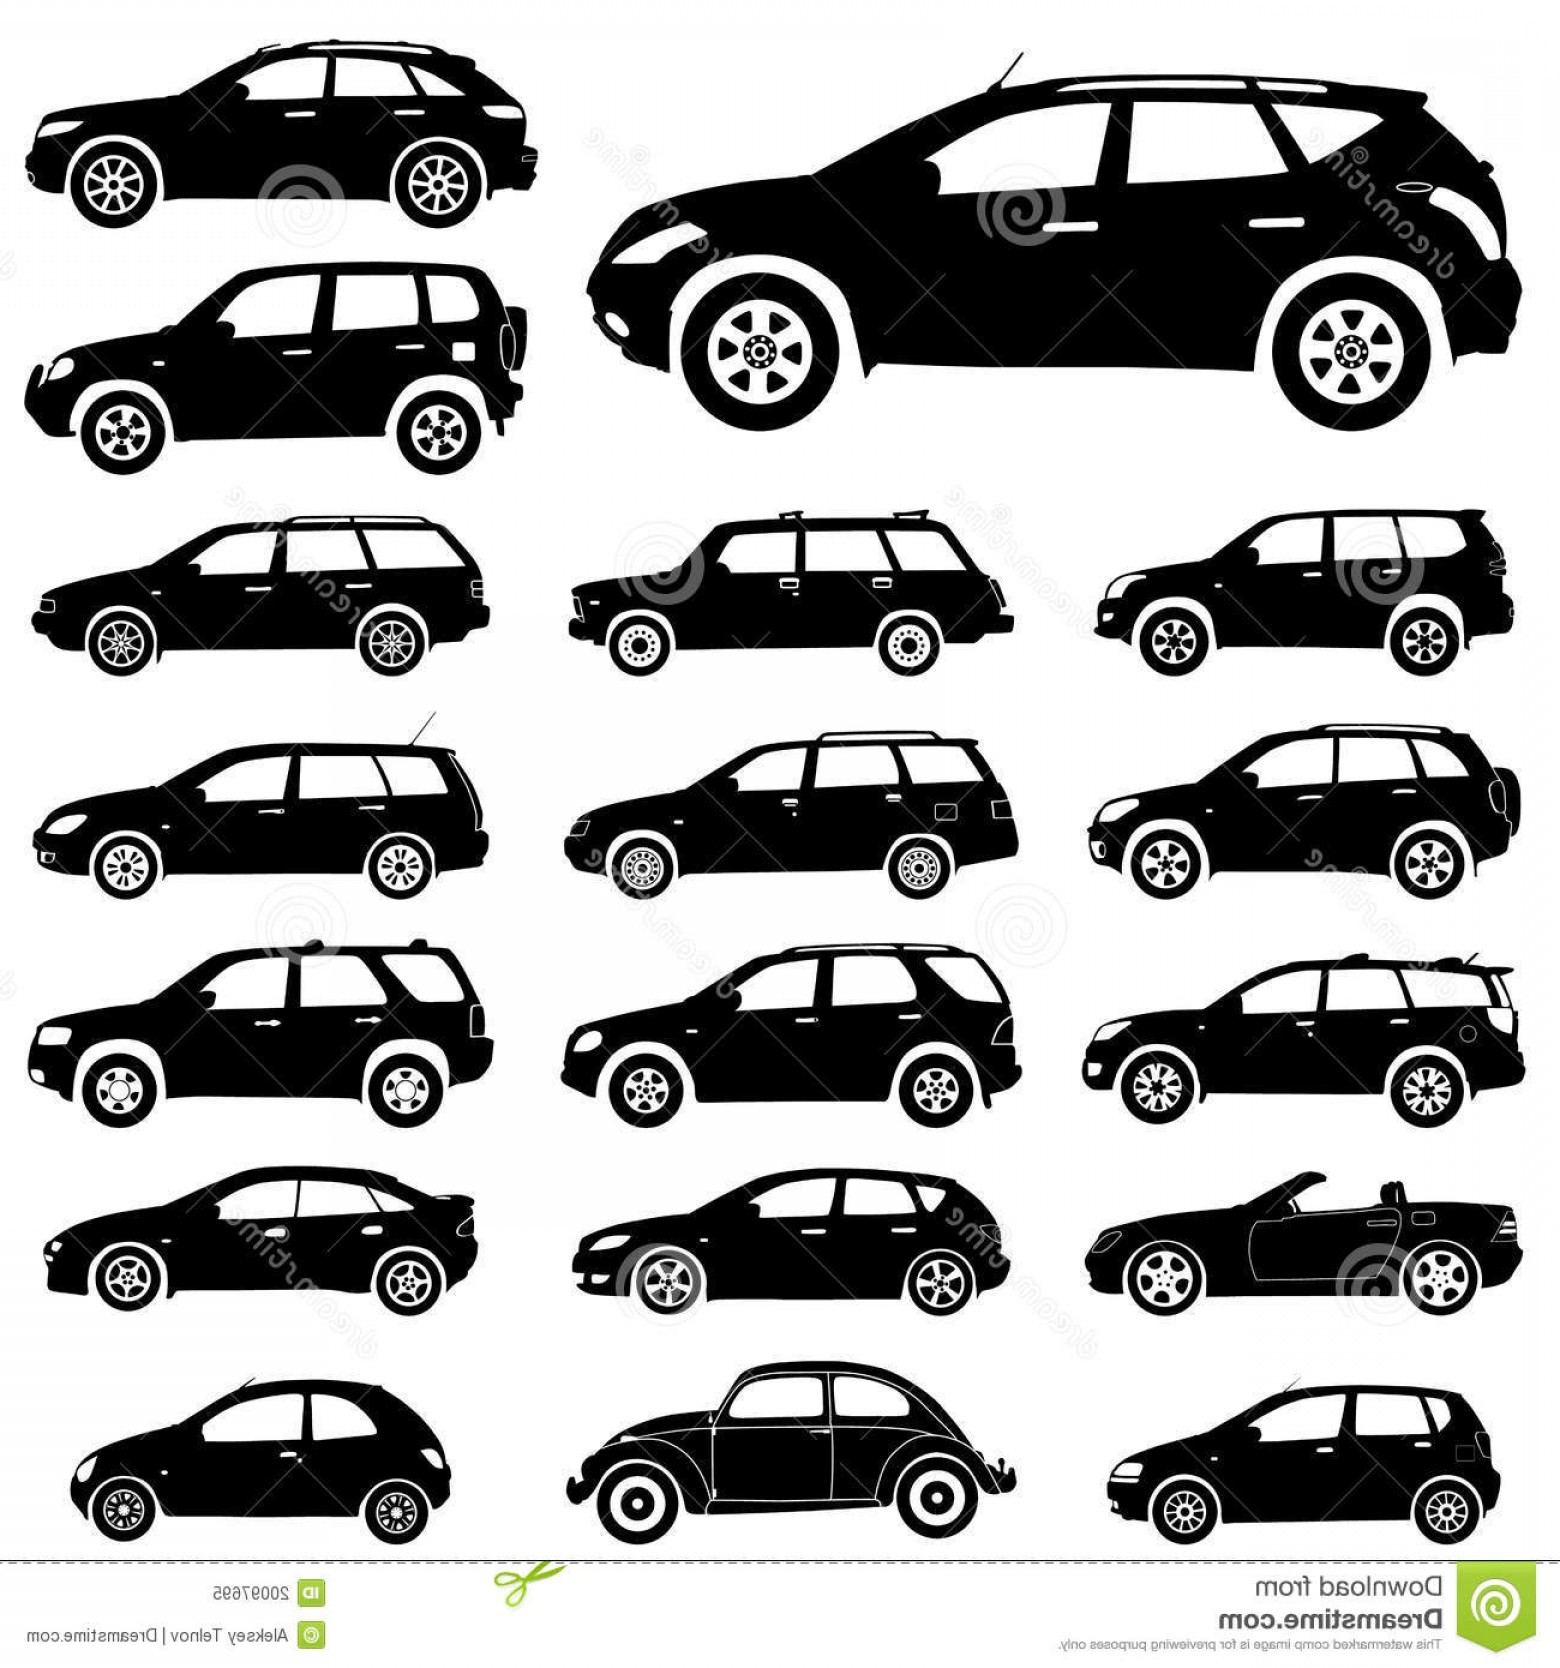 SUV Car Elevation Vector: Royalty Free Stock Photo Silhouette Cars Image